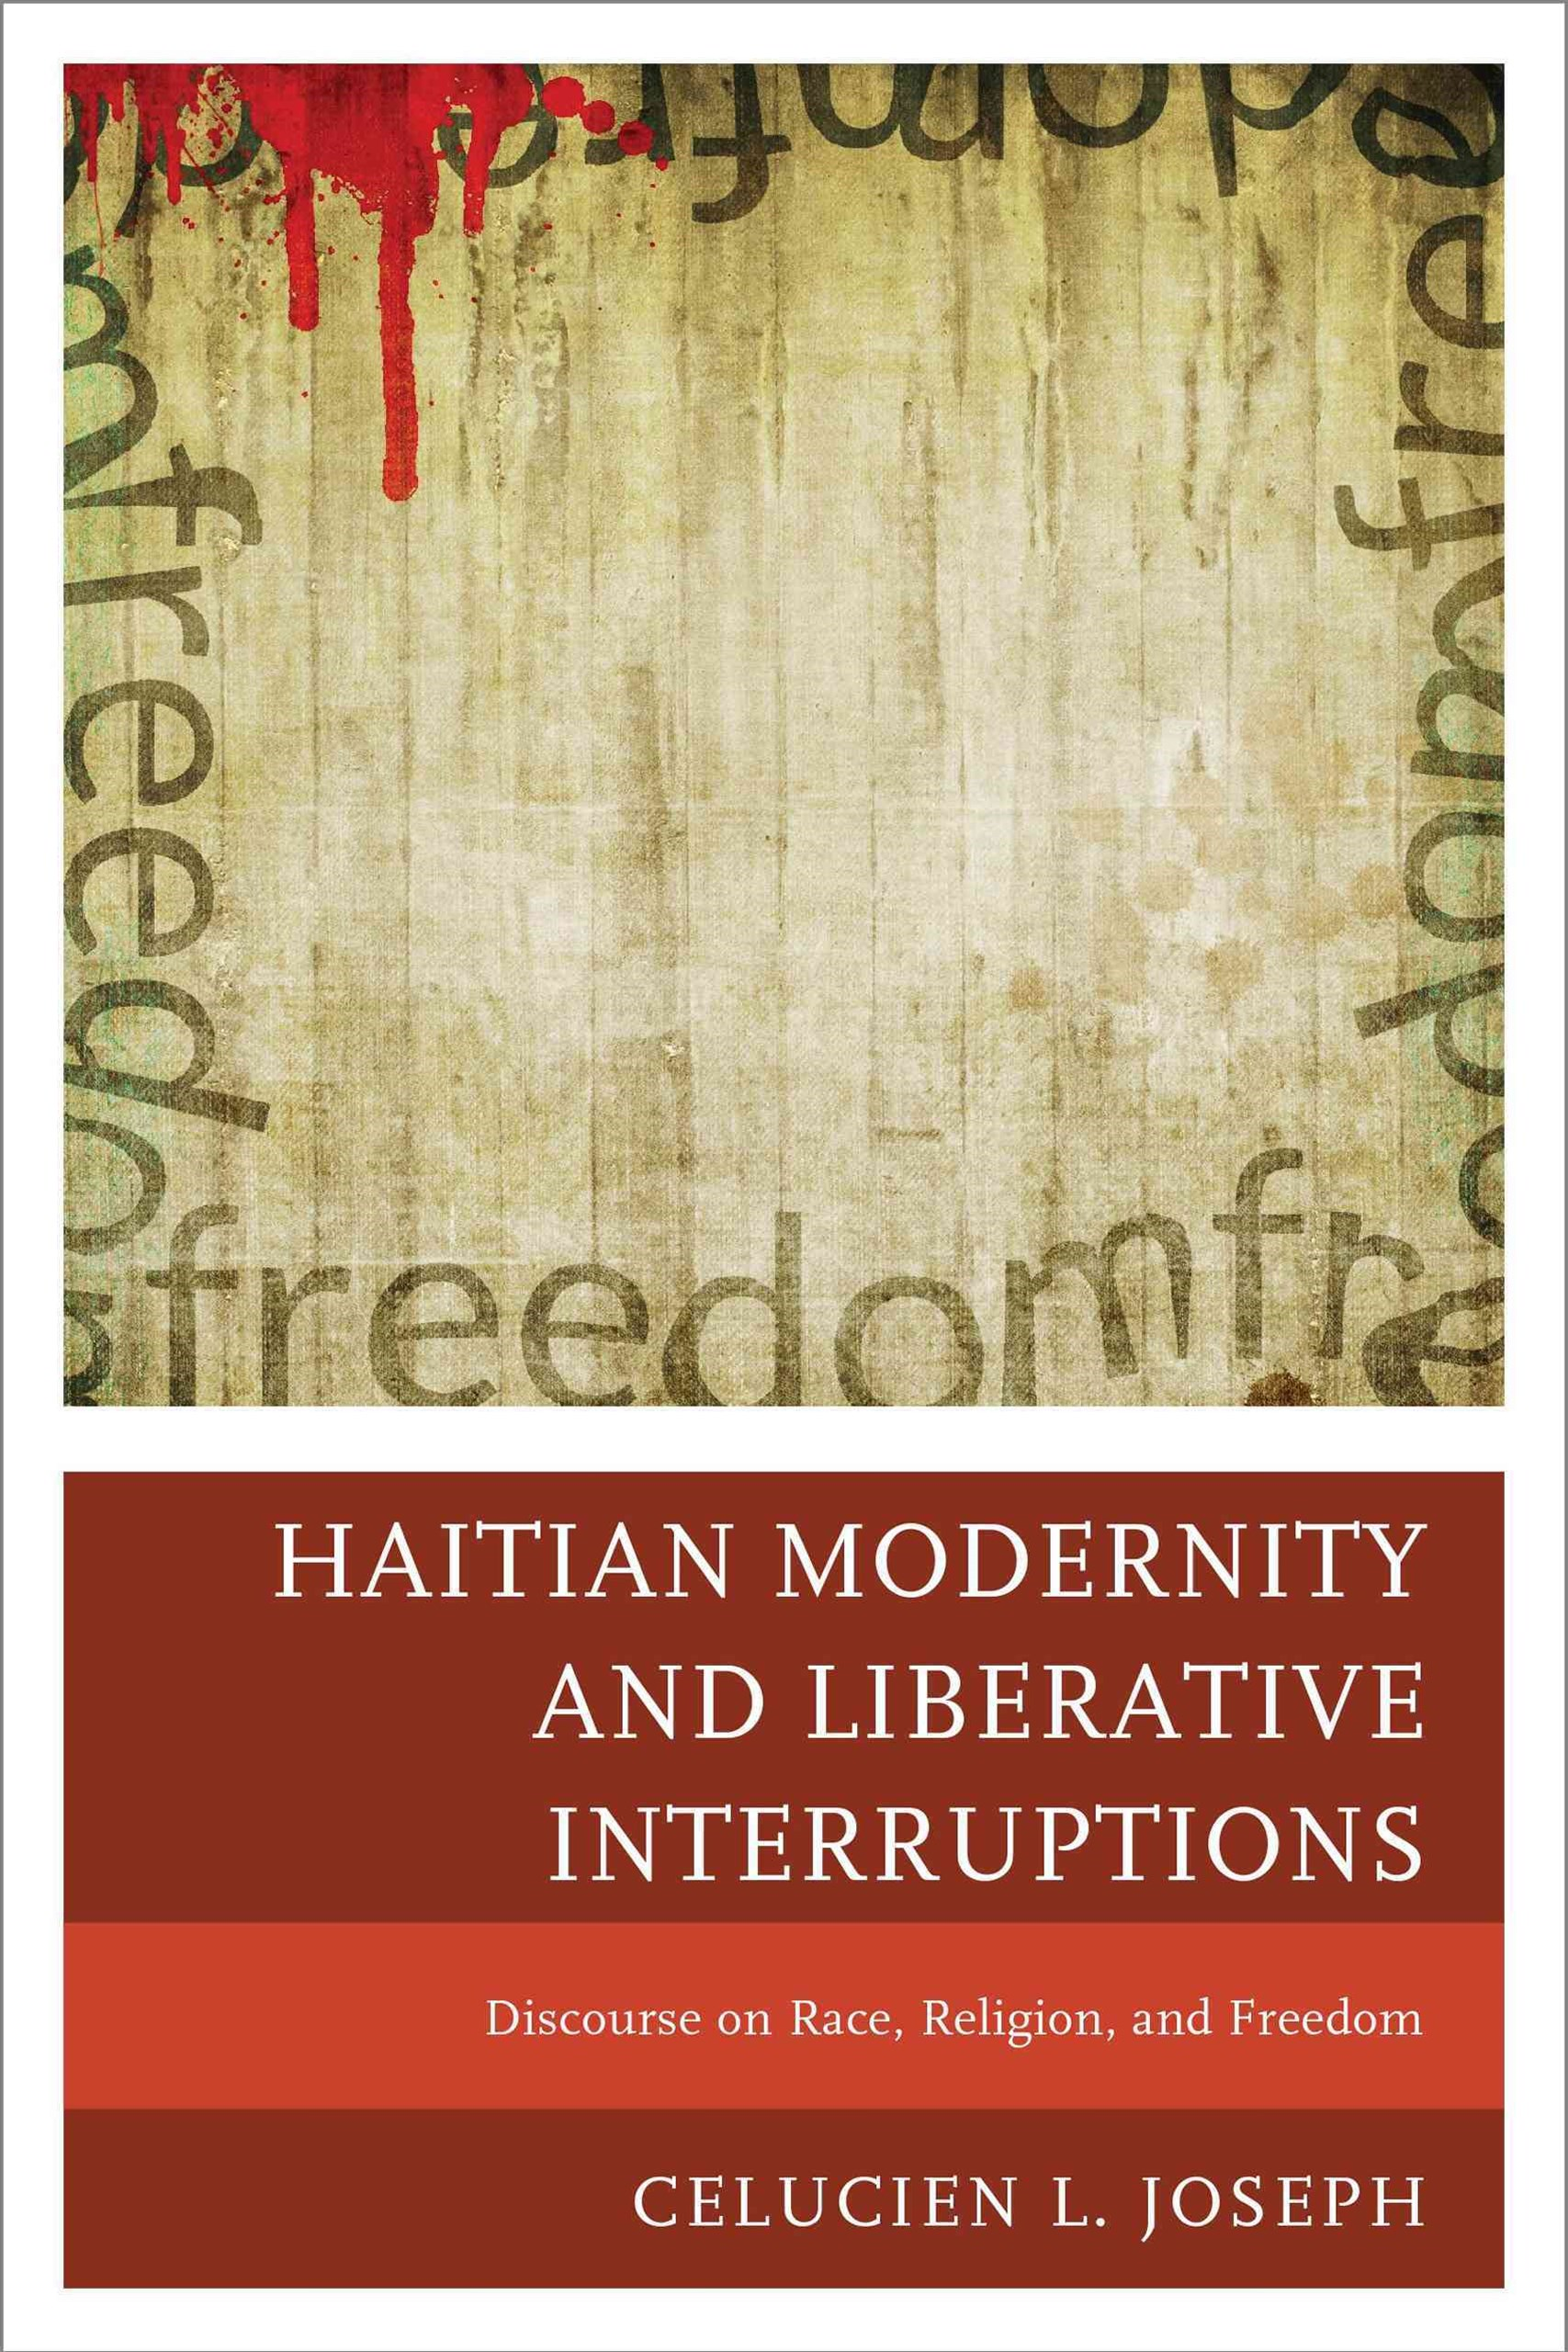 Haitian Modernity and Liberative Interruptions